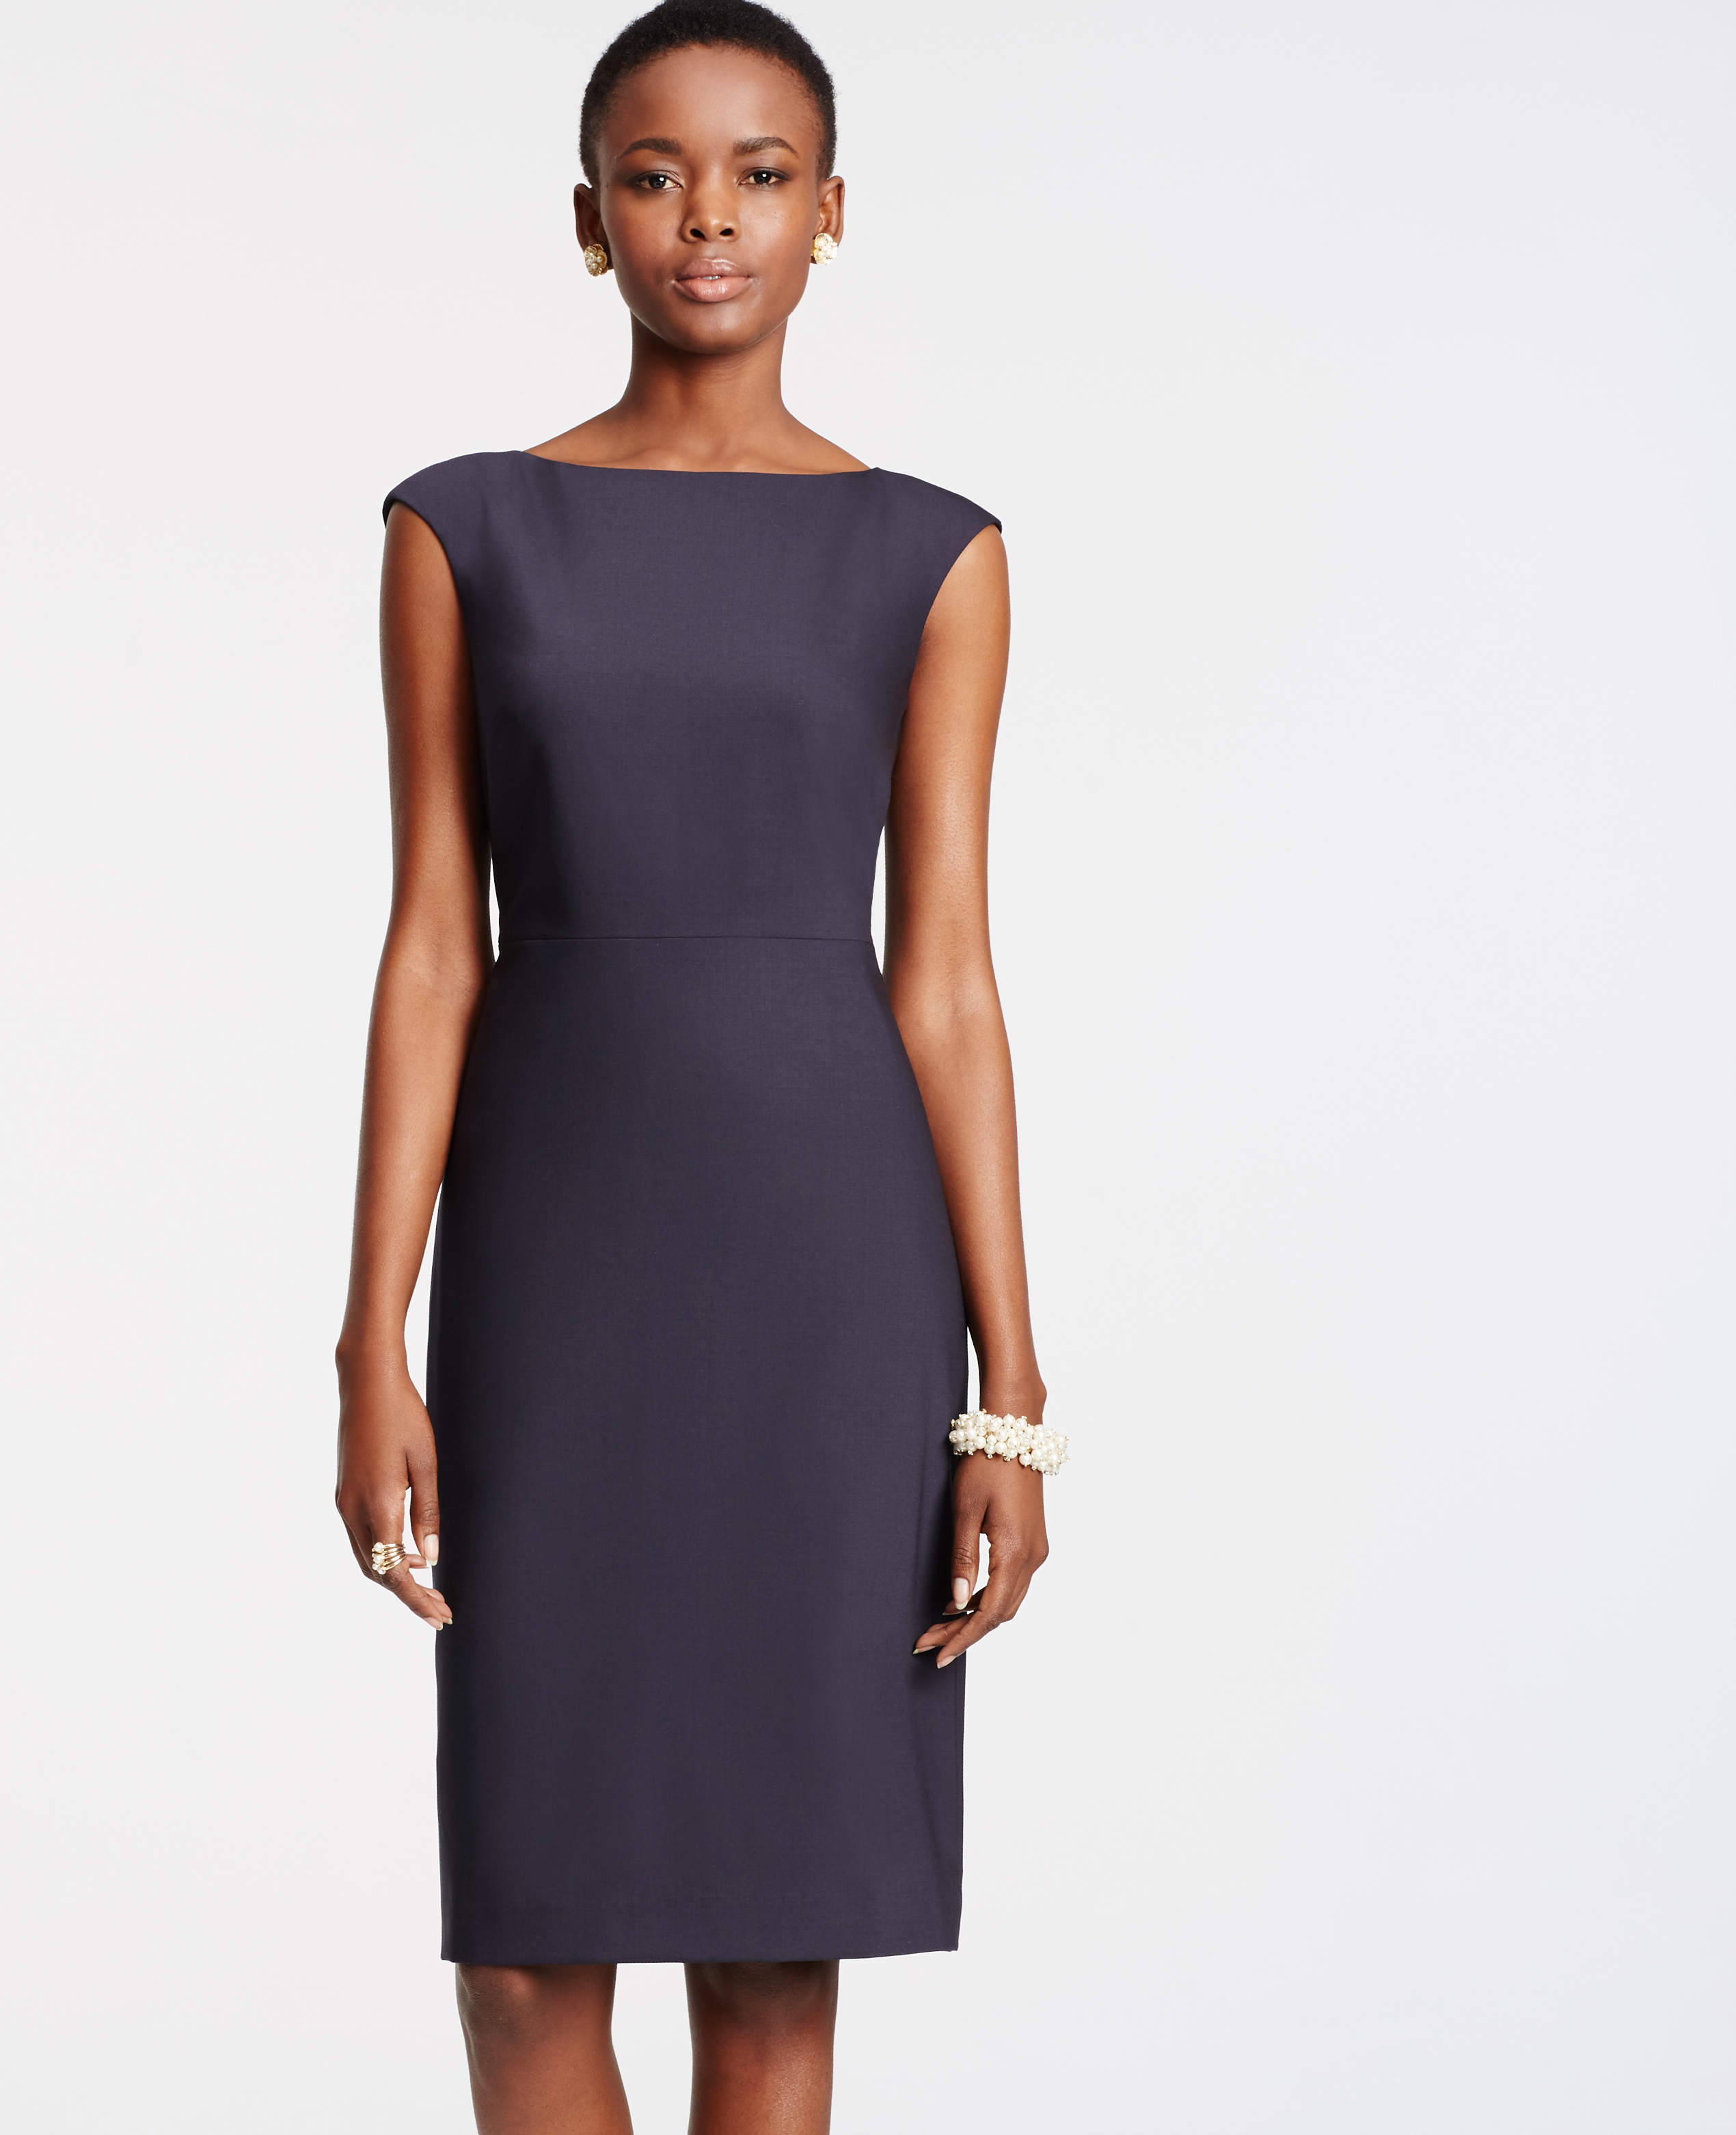 Ann taylor Petite Tropical Wool Sheath Dress in Blue | Lyst